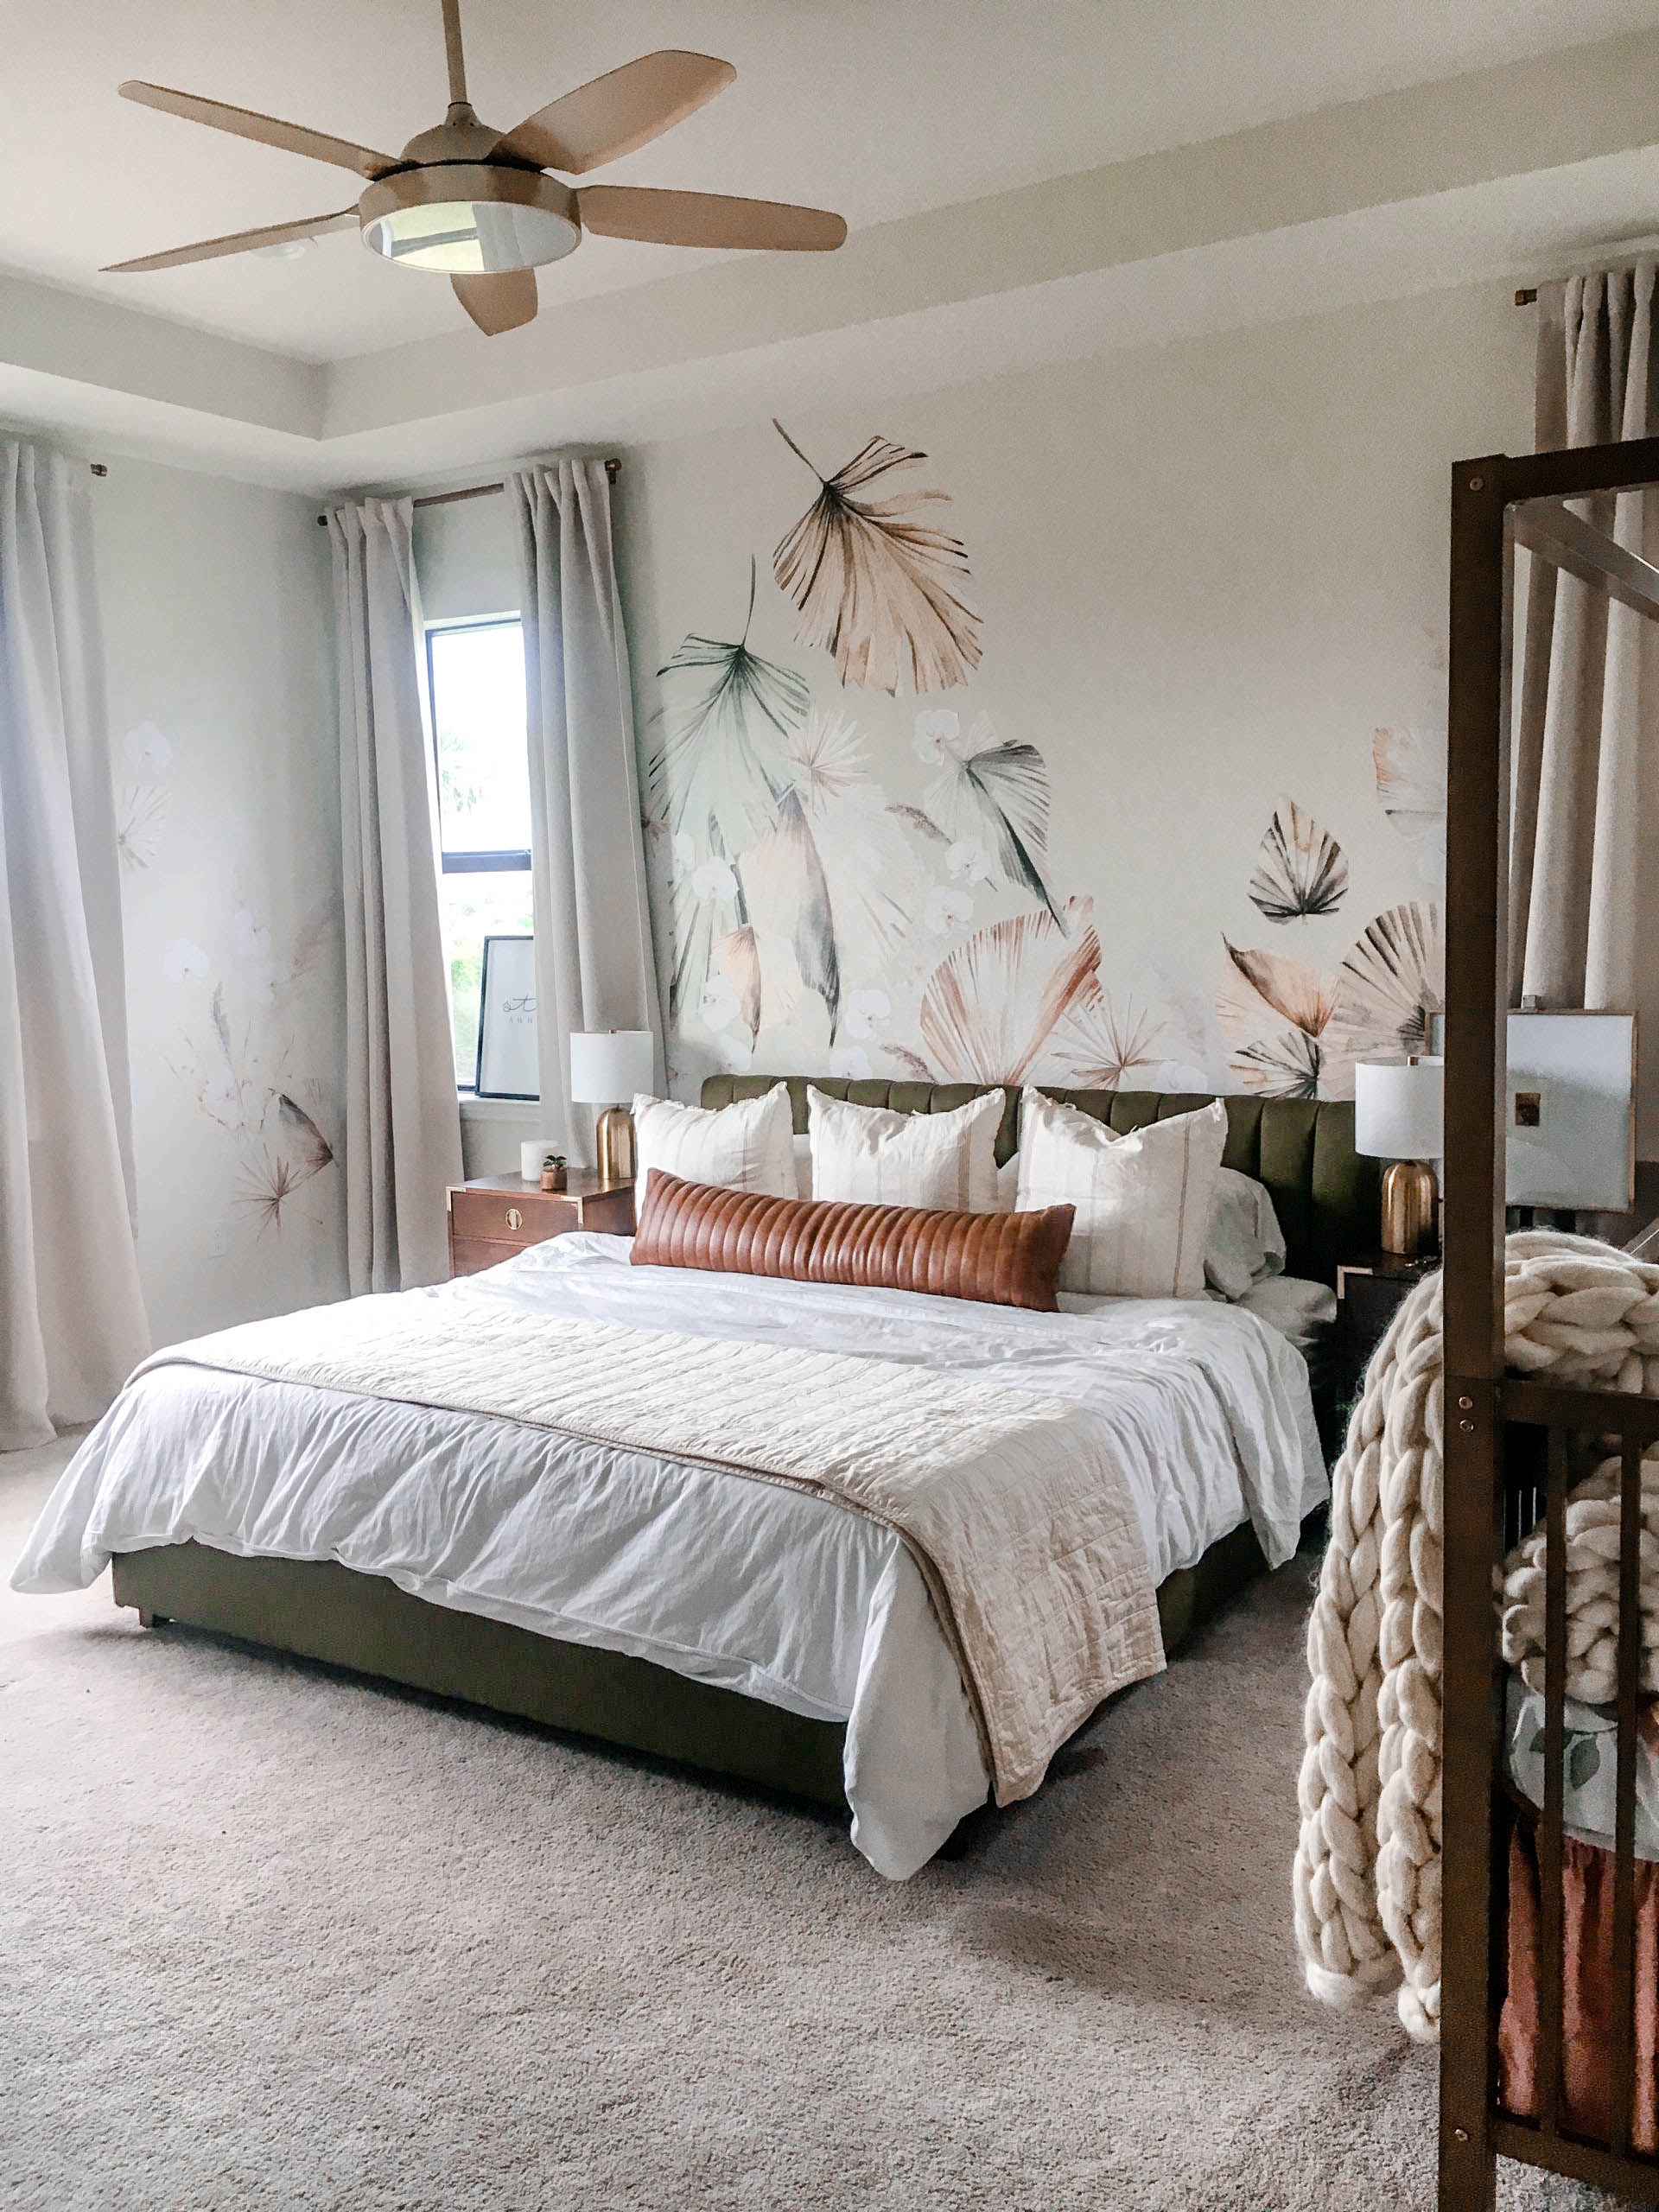 Decorating A Luxe, Organic Master Bedroom with Lisa Canning